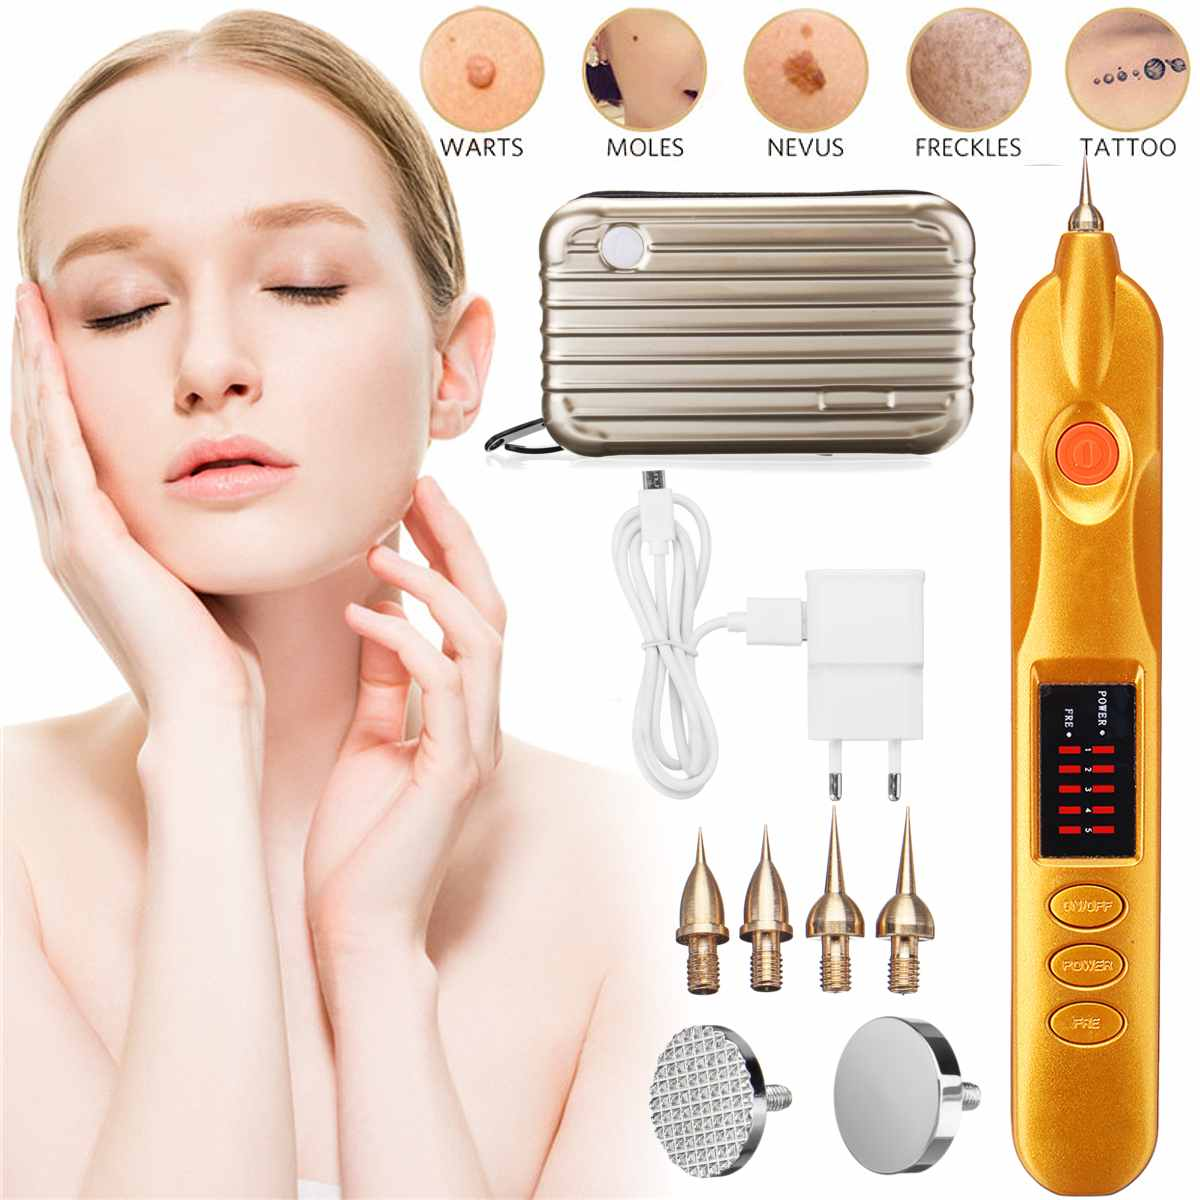 Laser Micro Plasma Pen Eyelid Lift Freckles Acne Skin Tag Dark Spot Remover for Face Tattoo Removal Machine Picosecond TherapyLaser Micro Plasma Pen Eyelid Lift Freckles Acne Skin Tag Dark Spot Remover for Face Tattoo Removal Machine Picosecond Therapy